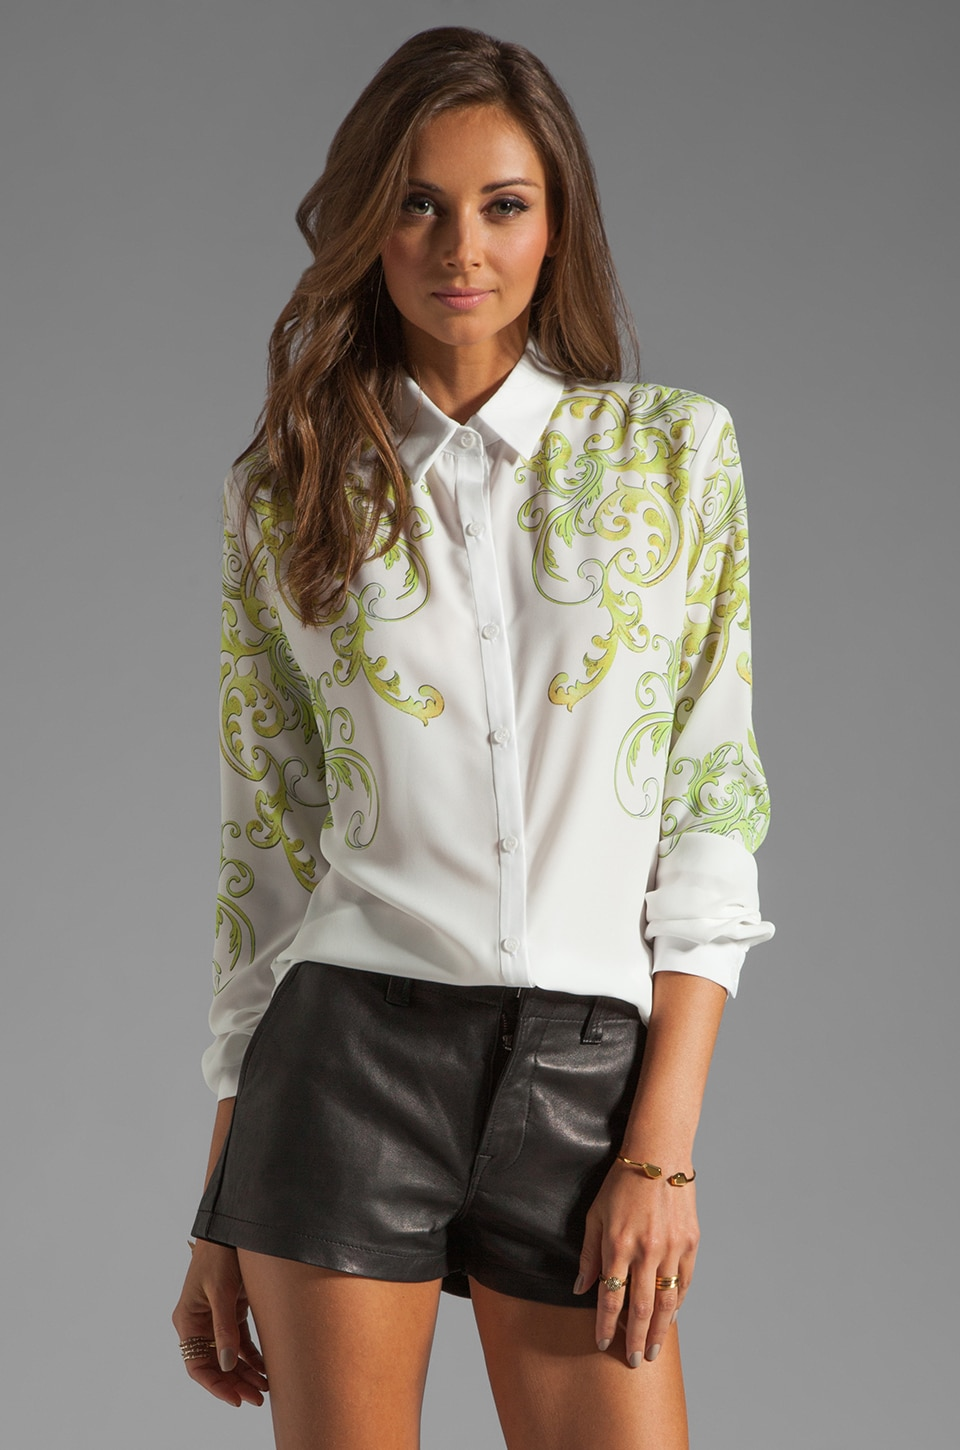 Clover Canyon Neon Filigree Blouse in White